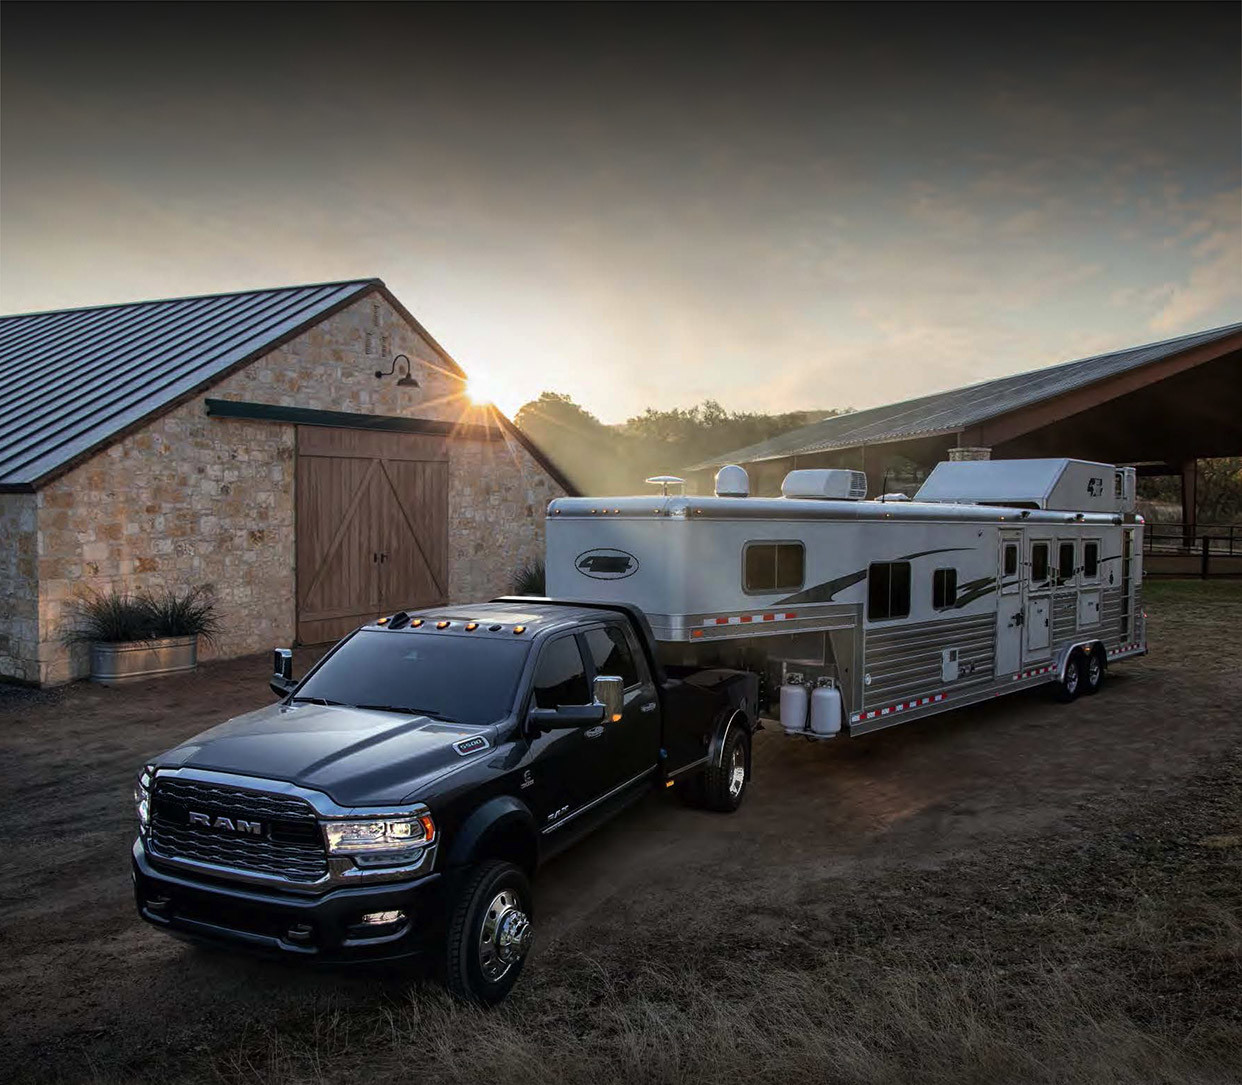 The black 2020 Ram Chassis Cab connected with camp trailer parked in front of barnyard